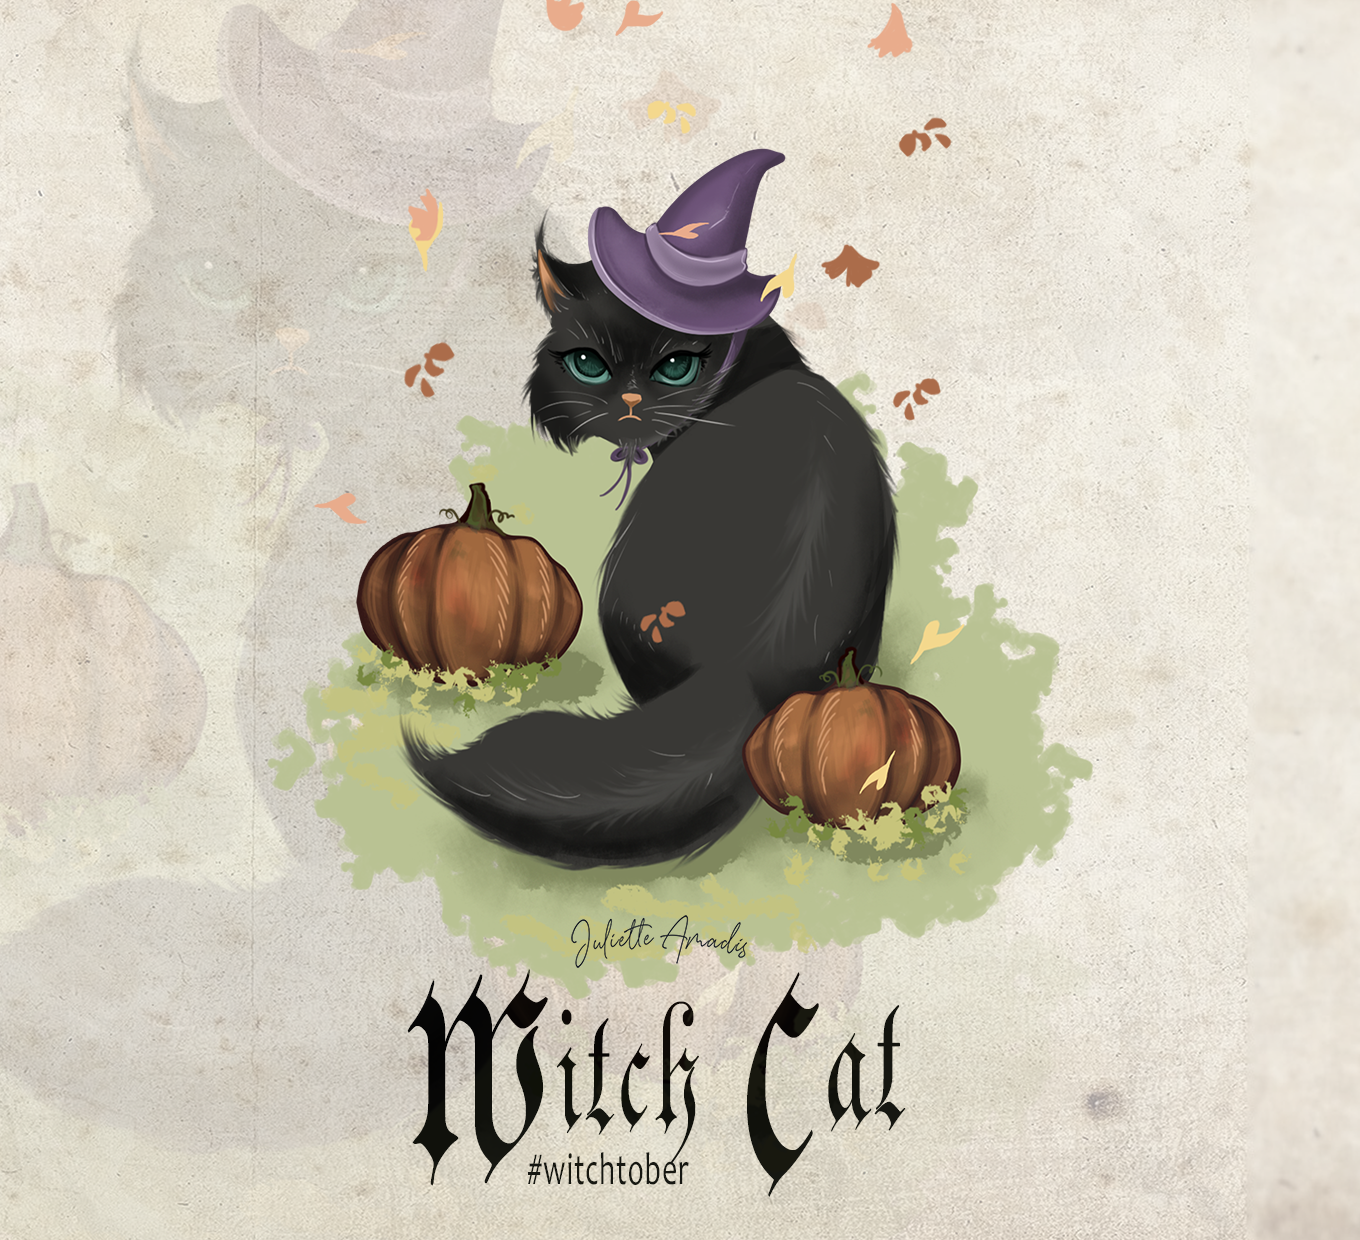 Witchtober 29 : Witch Cat